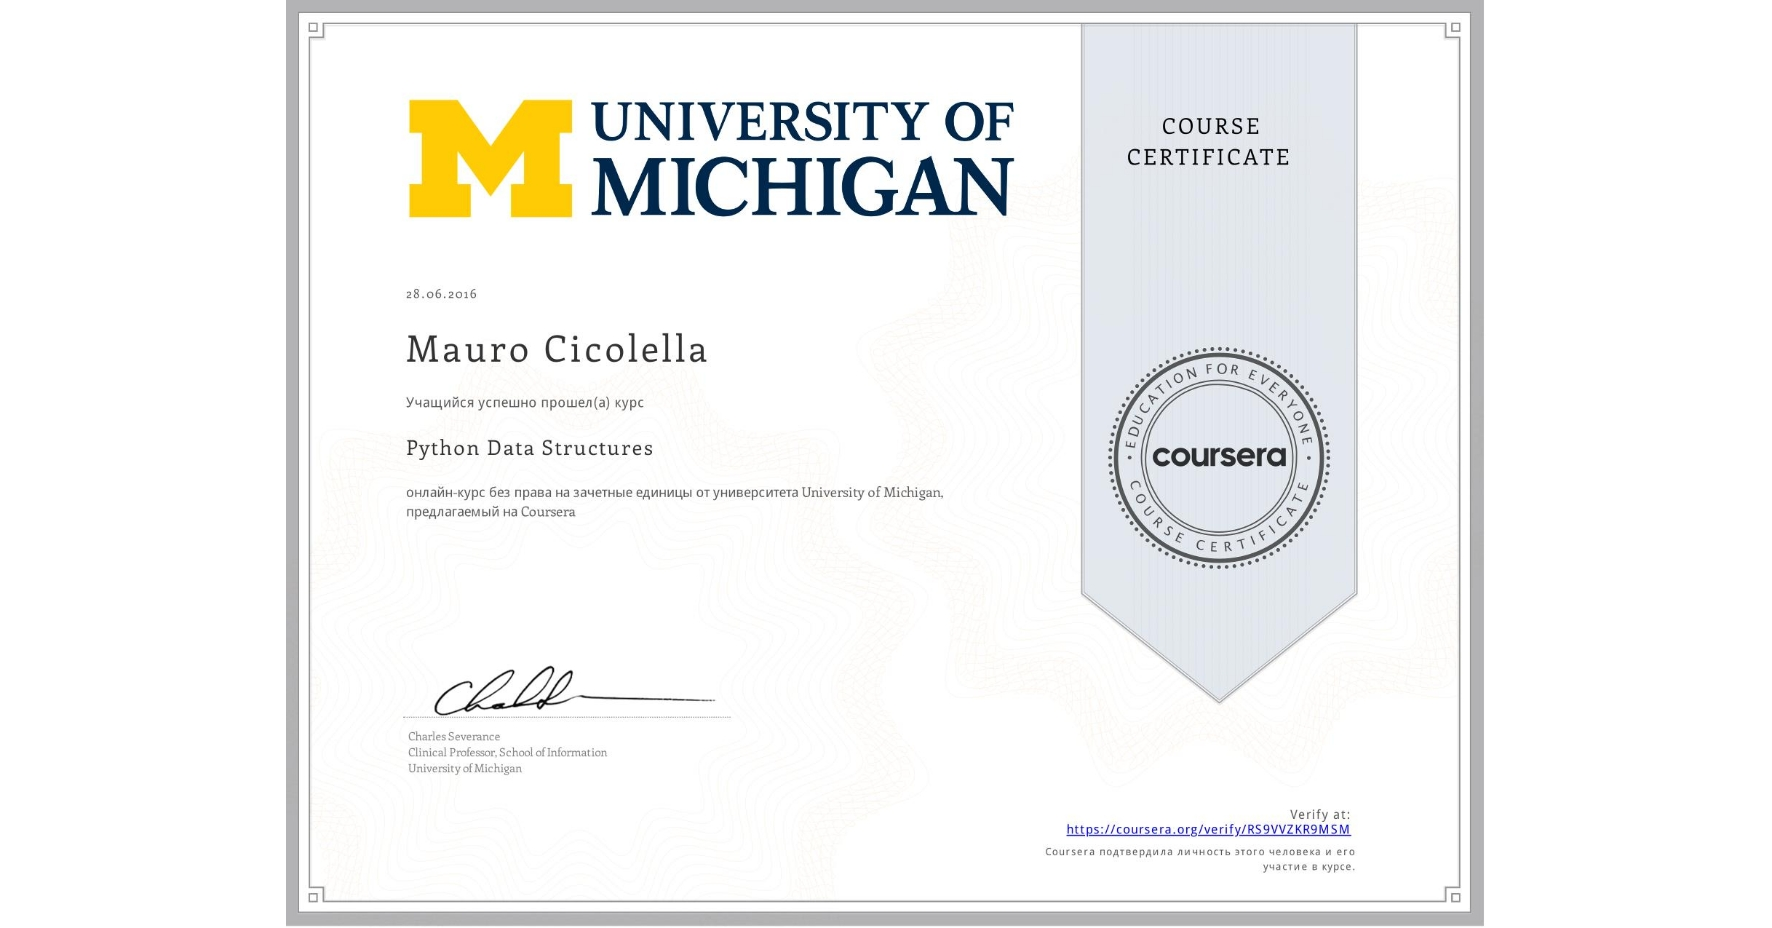 View certificate for Mauro Cicolella, Python Data Structures, an online non-credit course authorized by University of Michigan and offered through Coursera